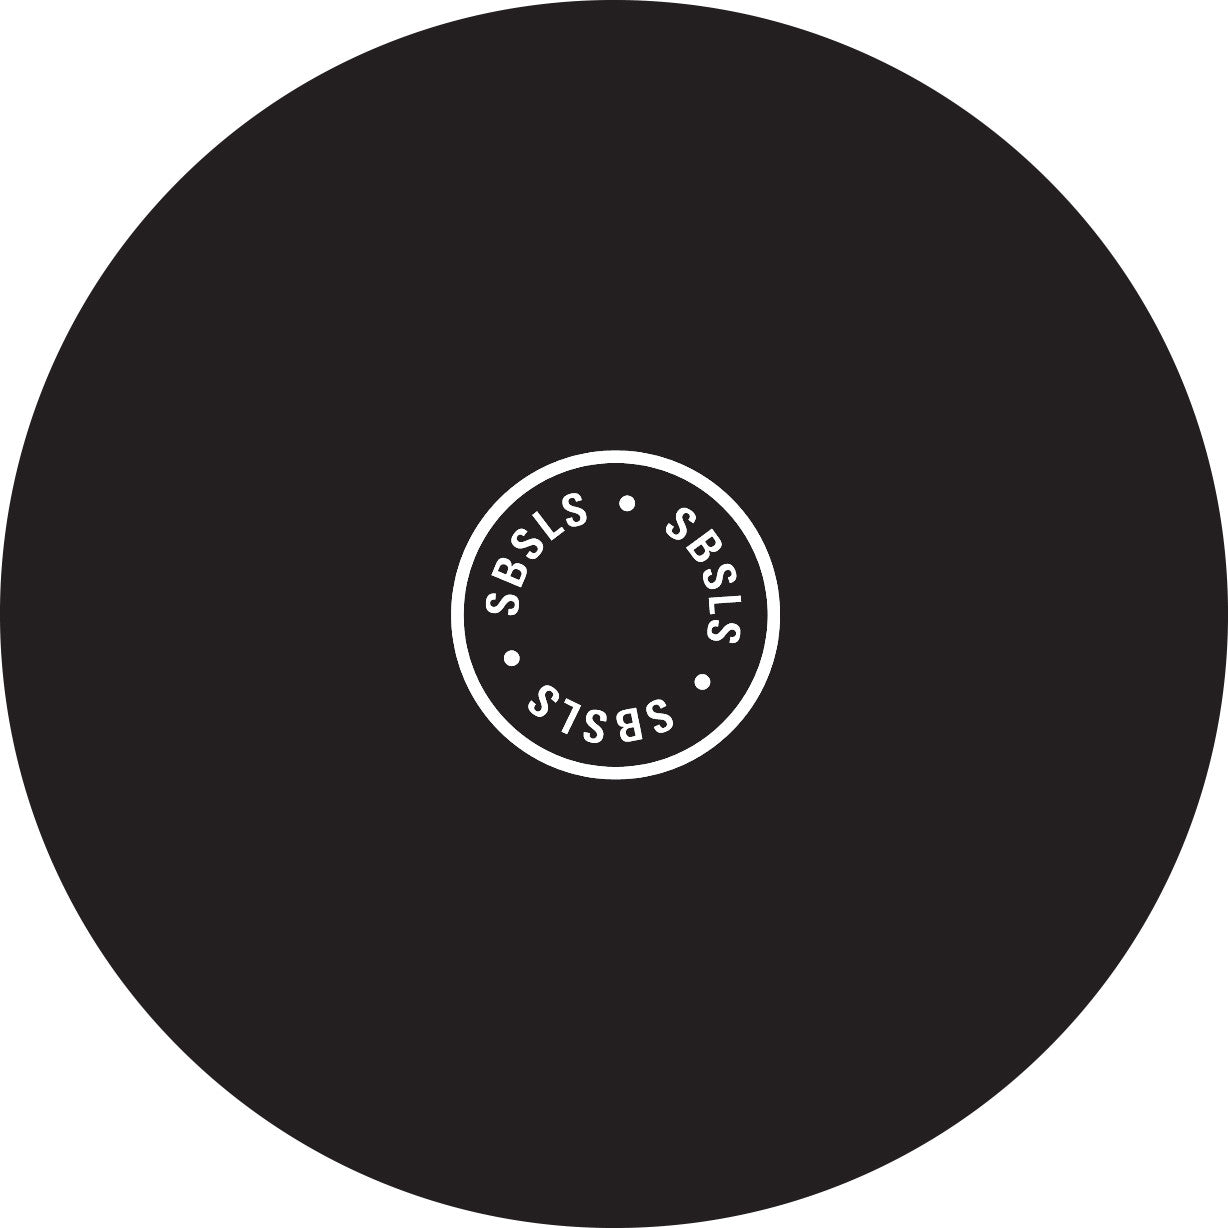 Sam Binga ft. Warrior Queen / Pev & Kowton - Wasted Days / End Point Remixes , Vinyl - SBSLS, Unearthed Sounds